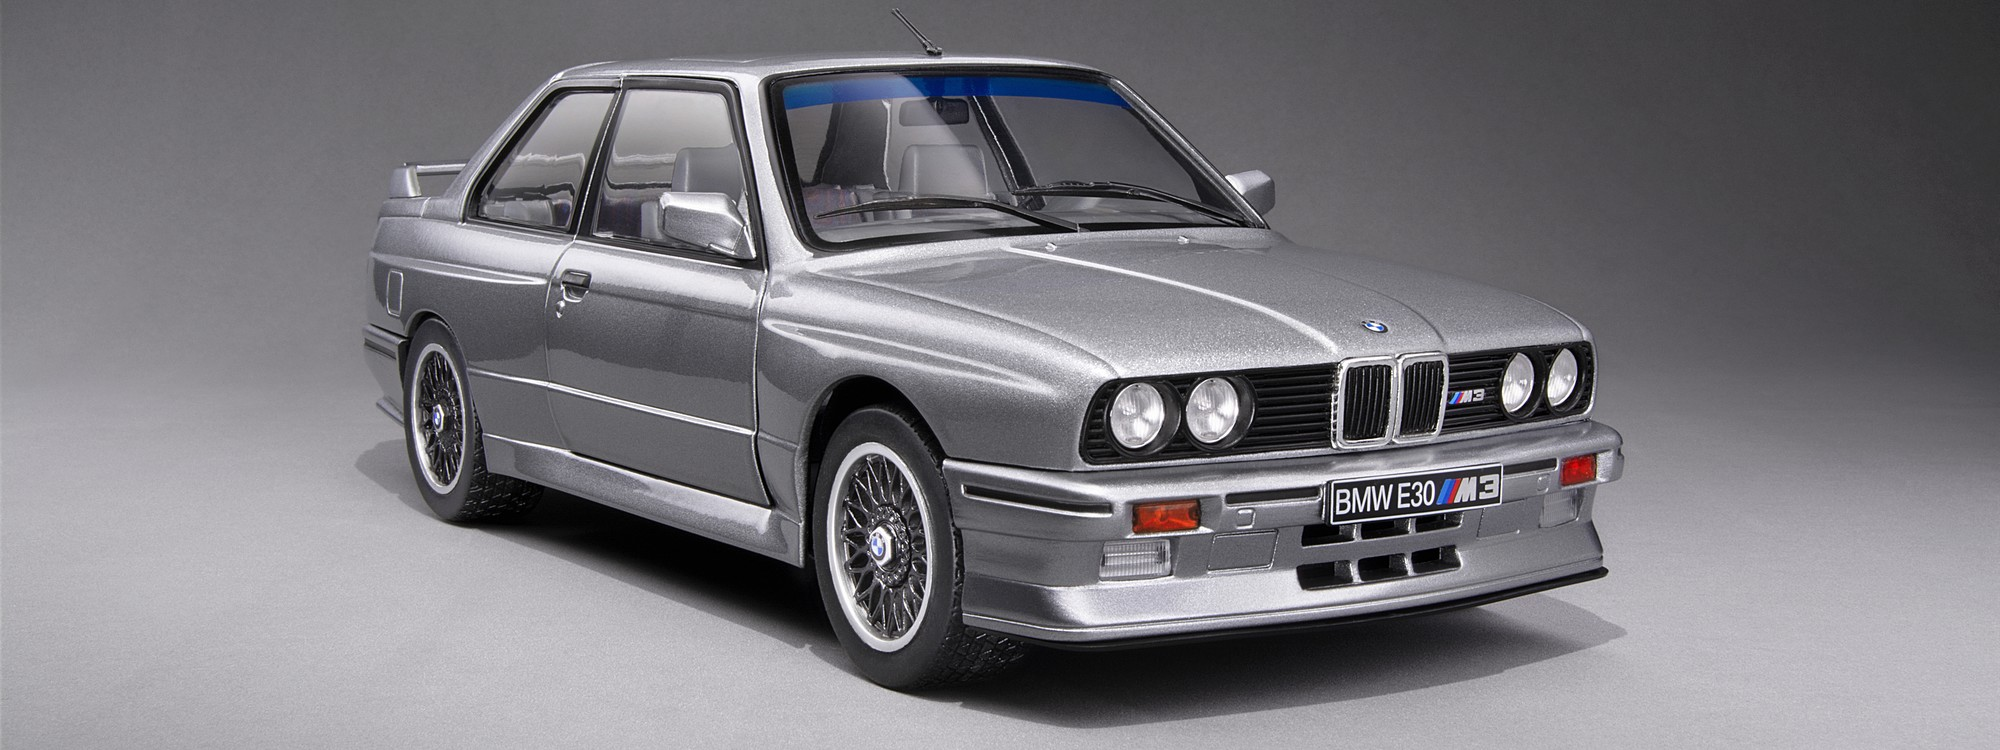 Slide - BMW E30 M3 Grey